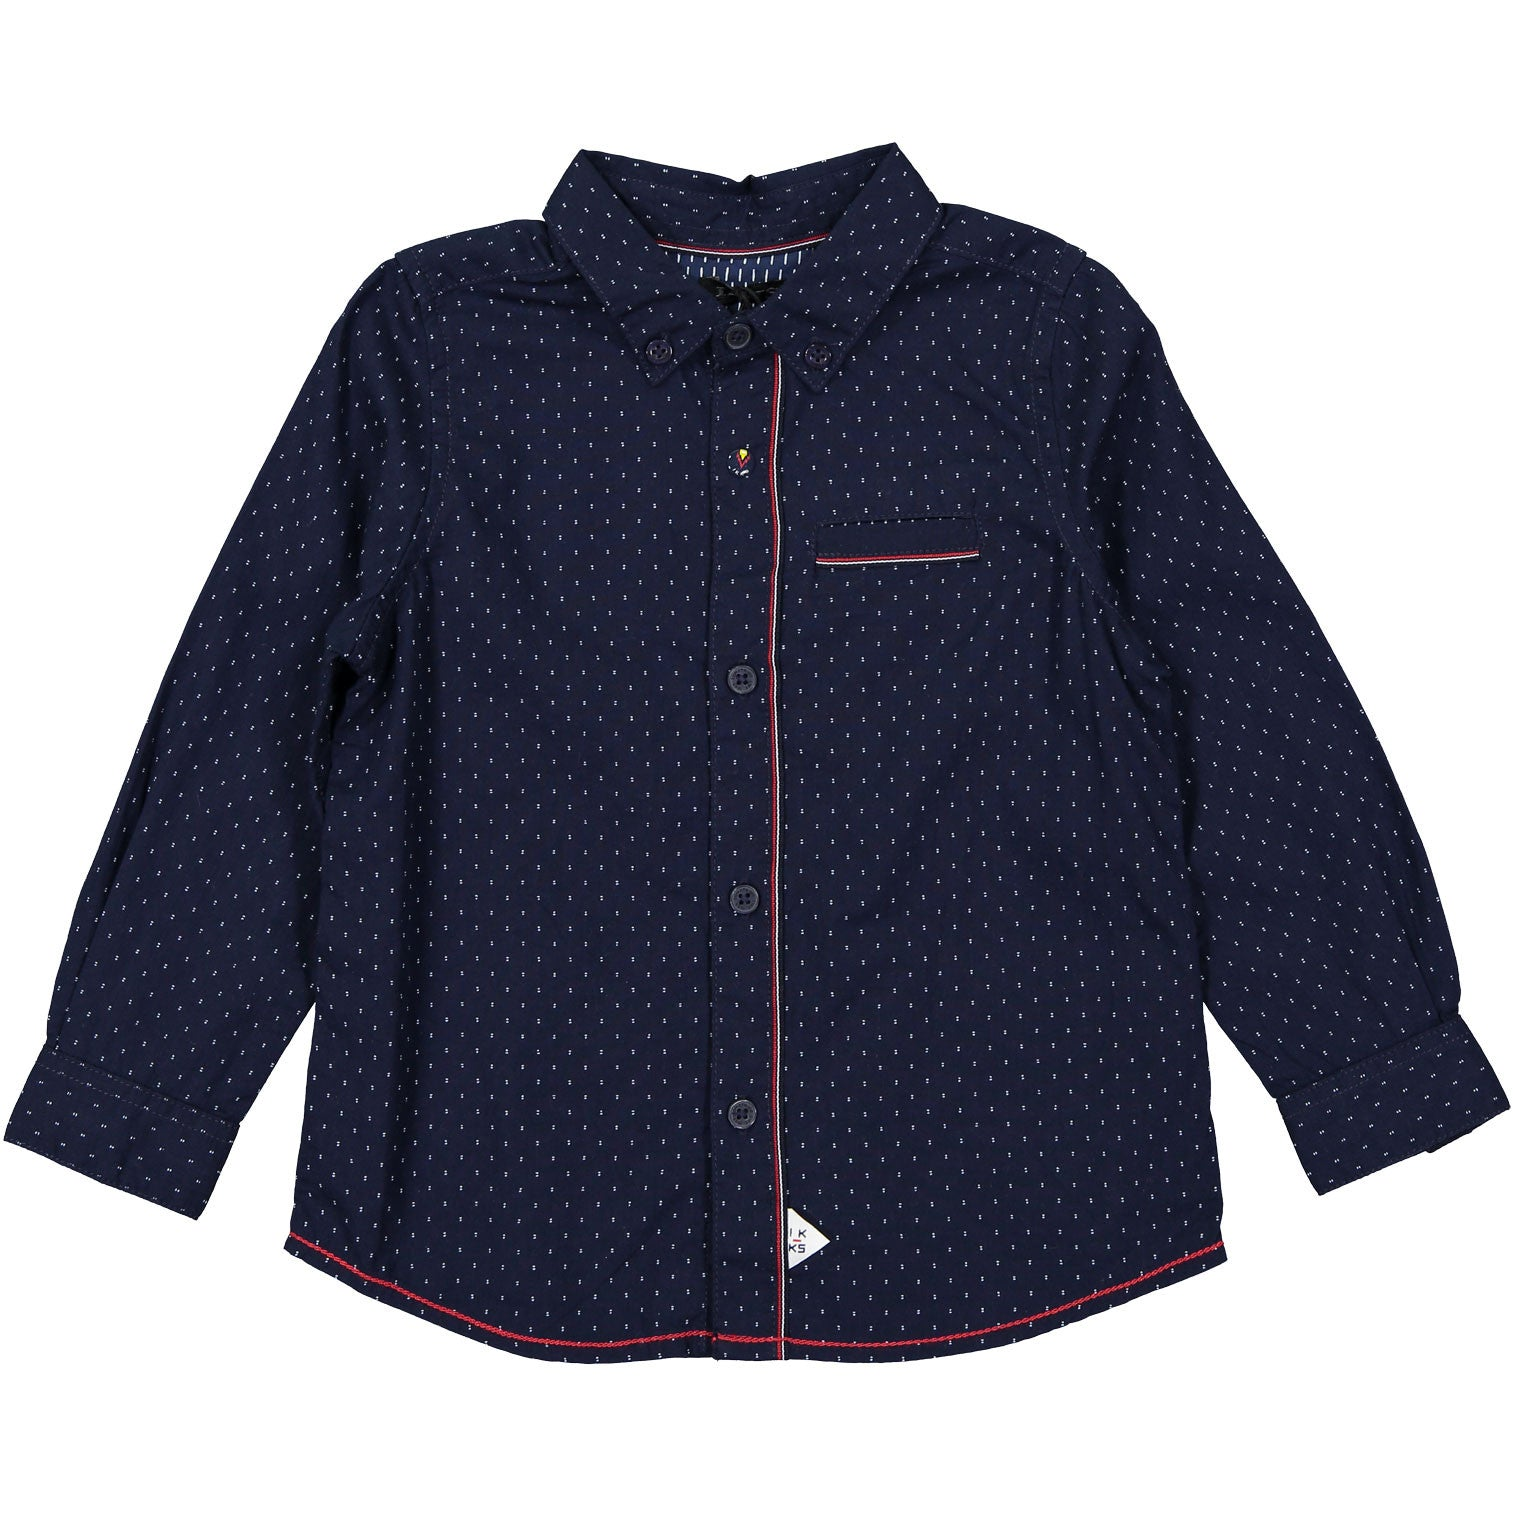 IKKS Navy Trimmed Shirt - Ladida